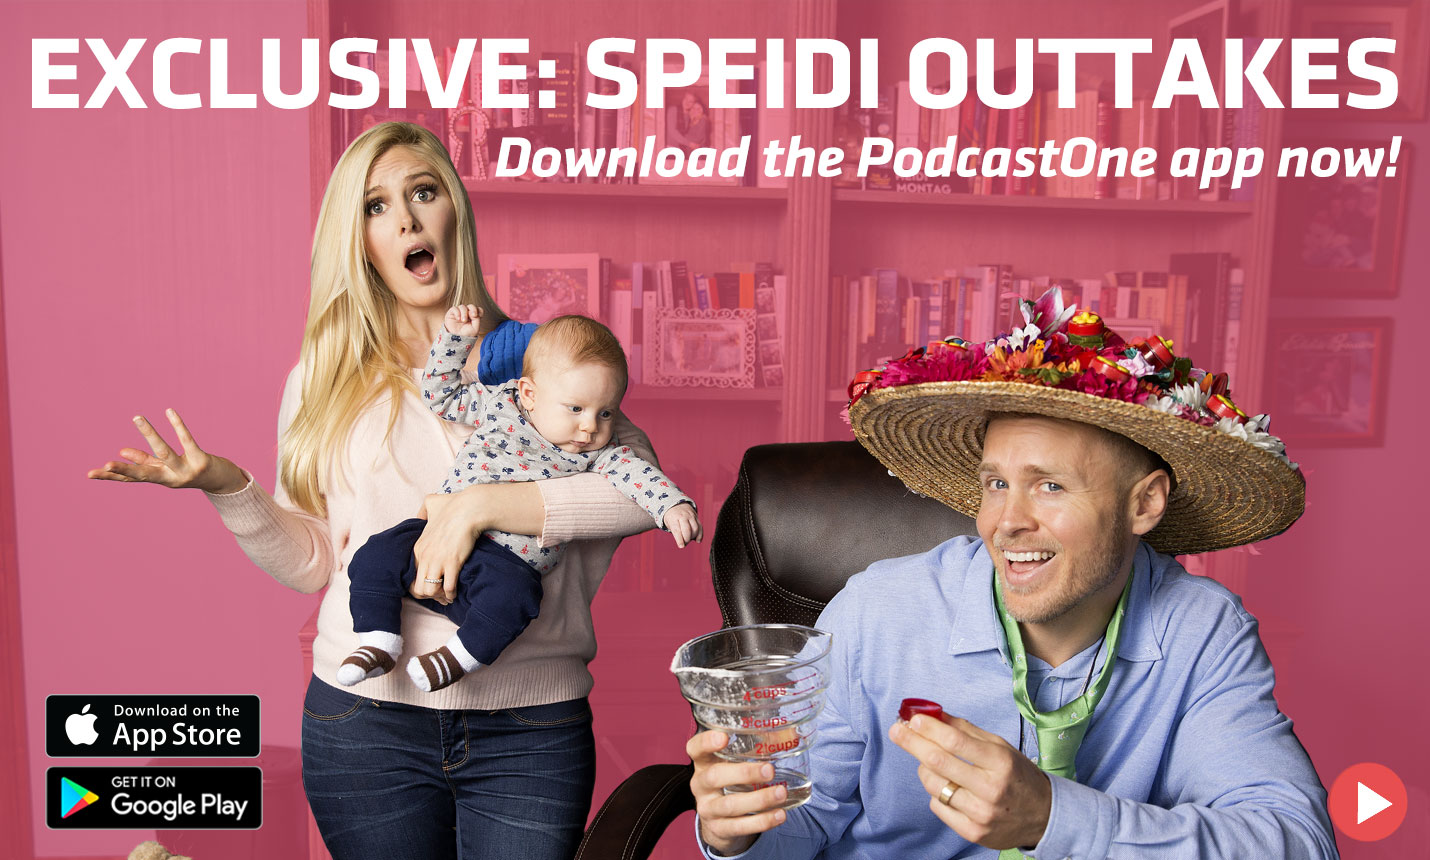 Make Speidi Famous Again - Download the PodcastOne App!